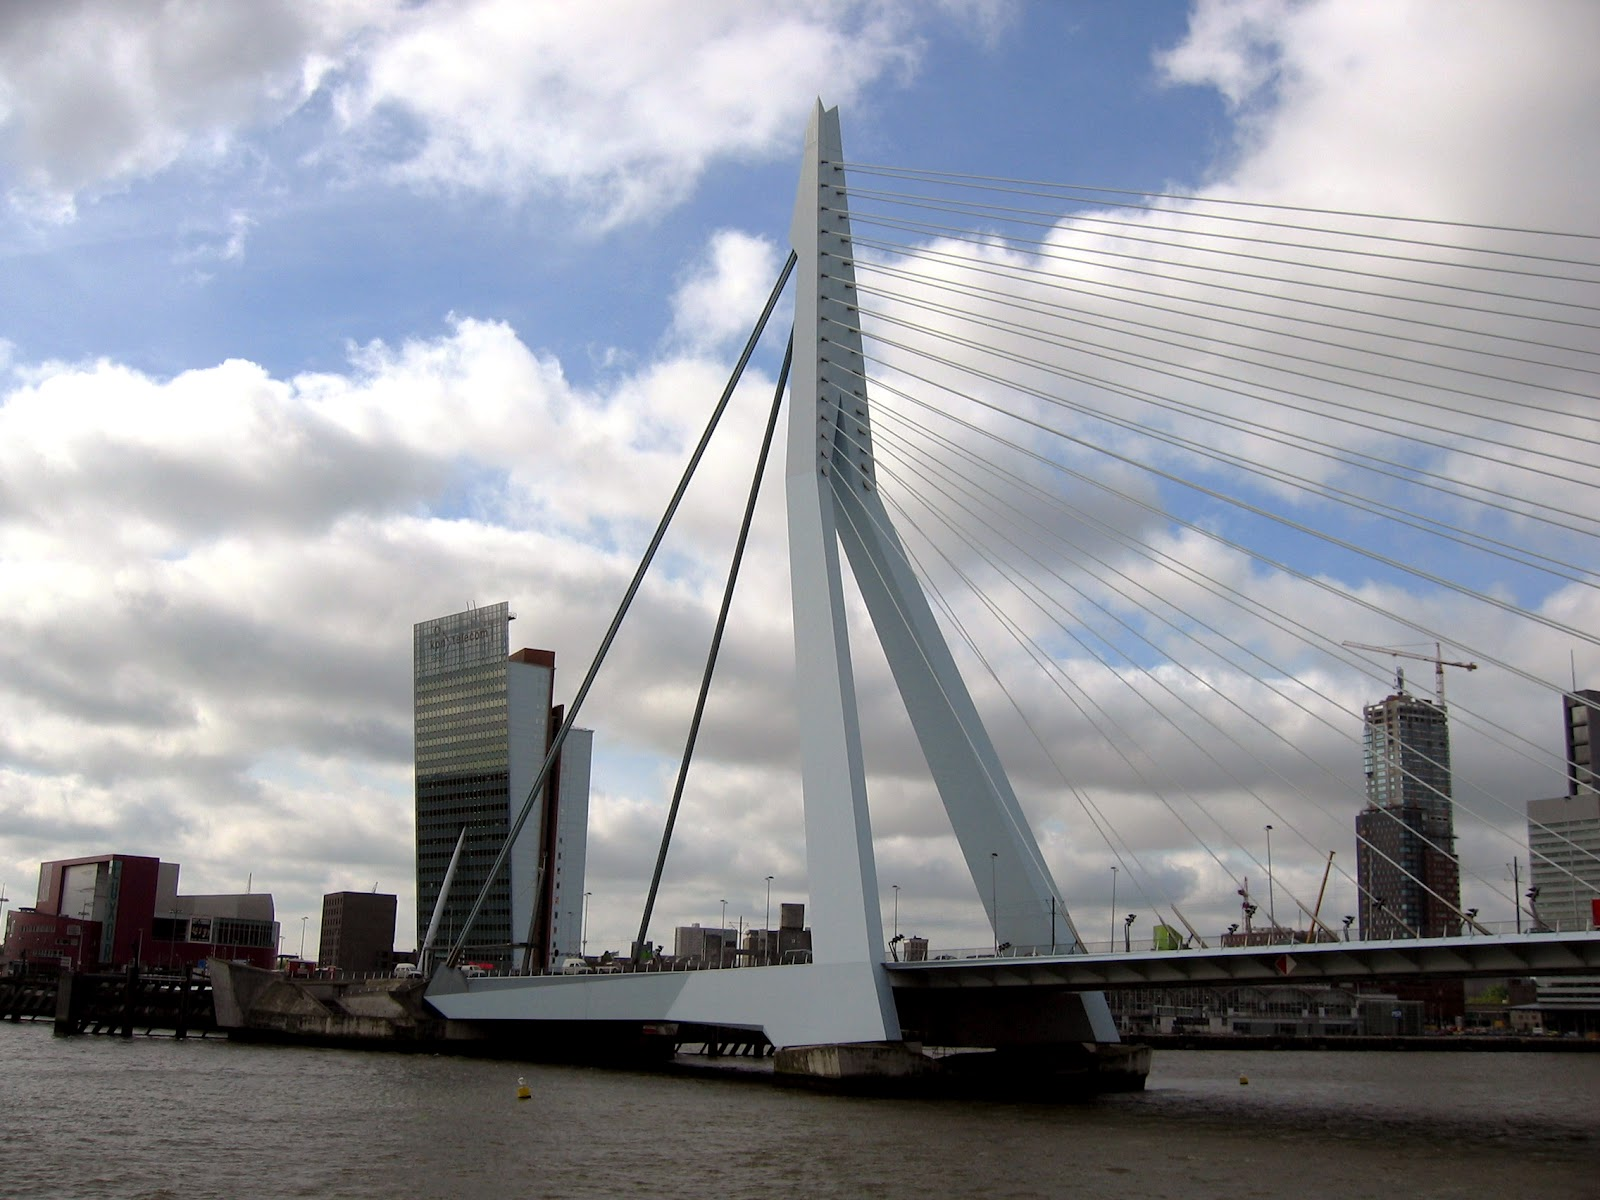 Erasmusbrug Erasmus Bridge Rotterdam The Netherlands